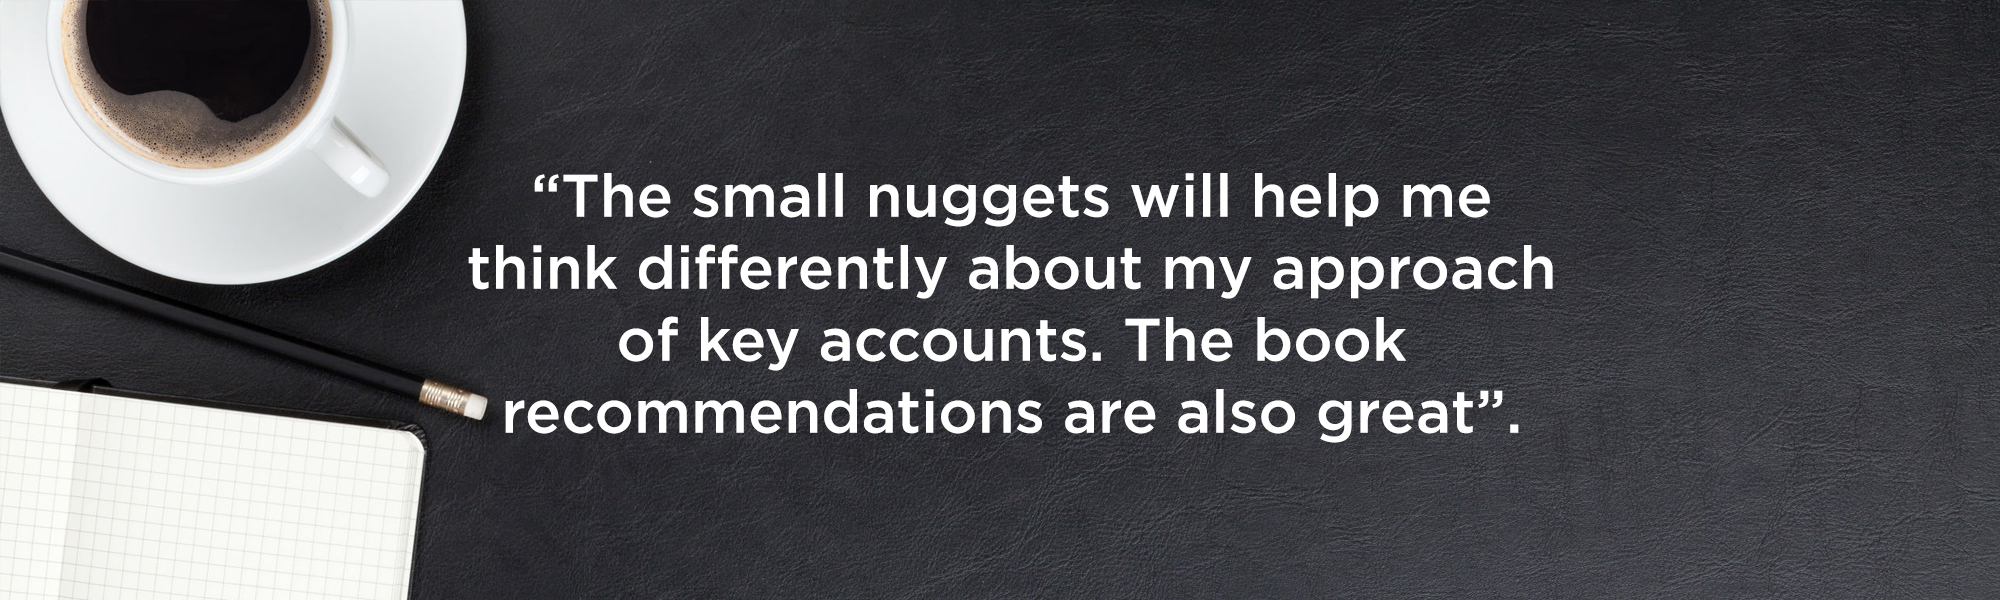 12_The small nuggets.jpg